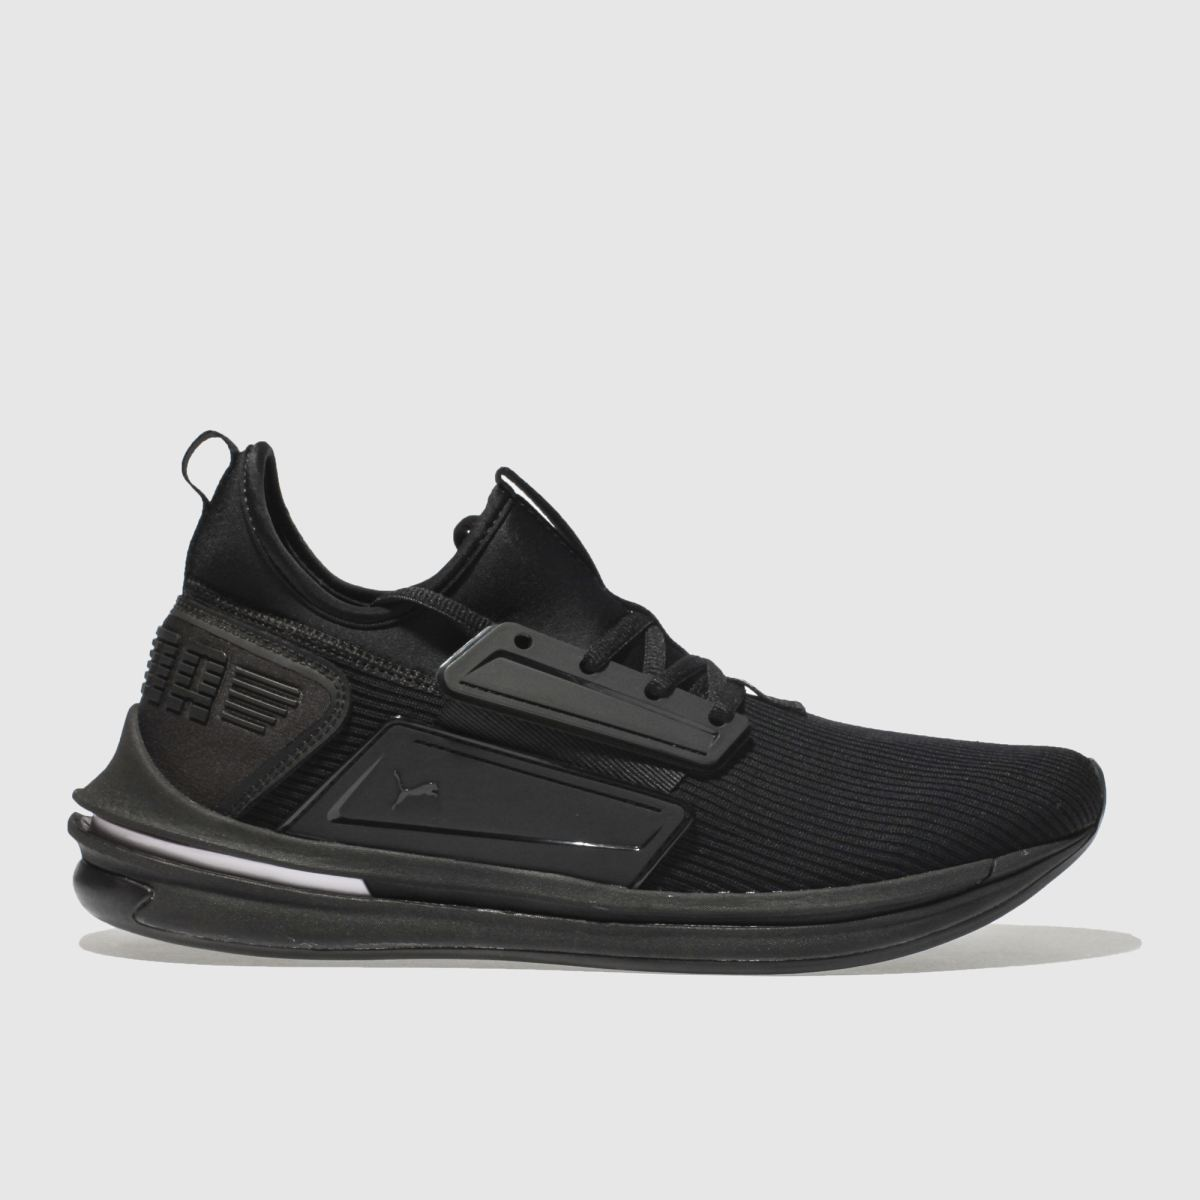 Puma Black Ignite Limitless Sr Trainers